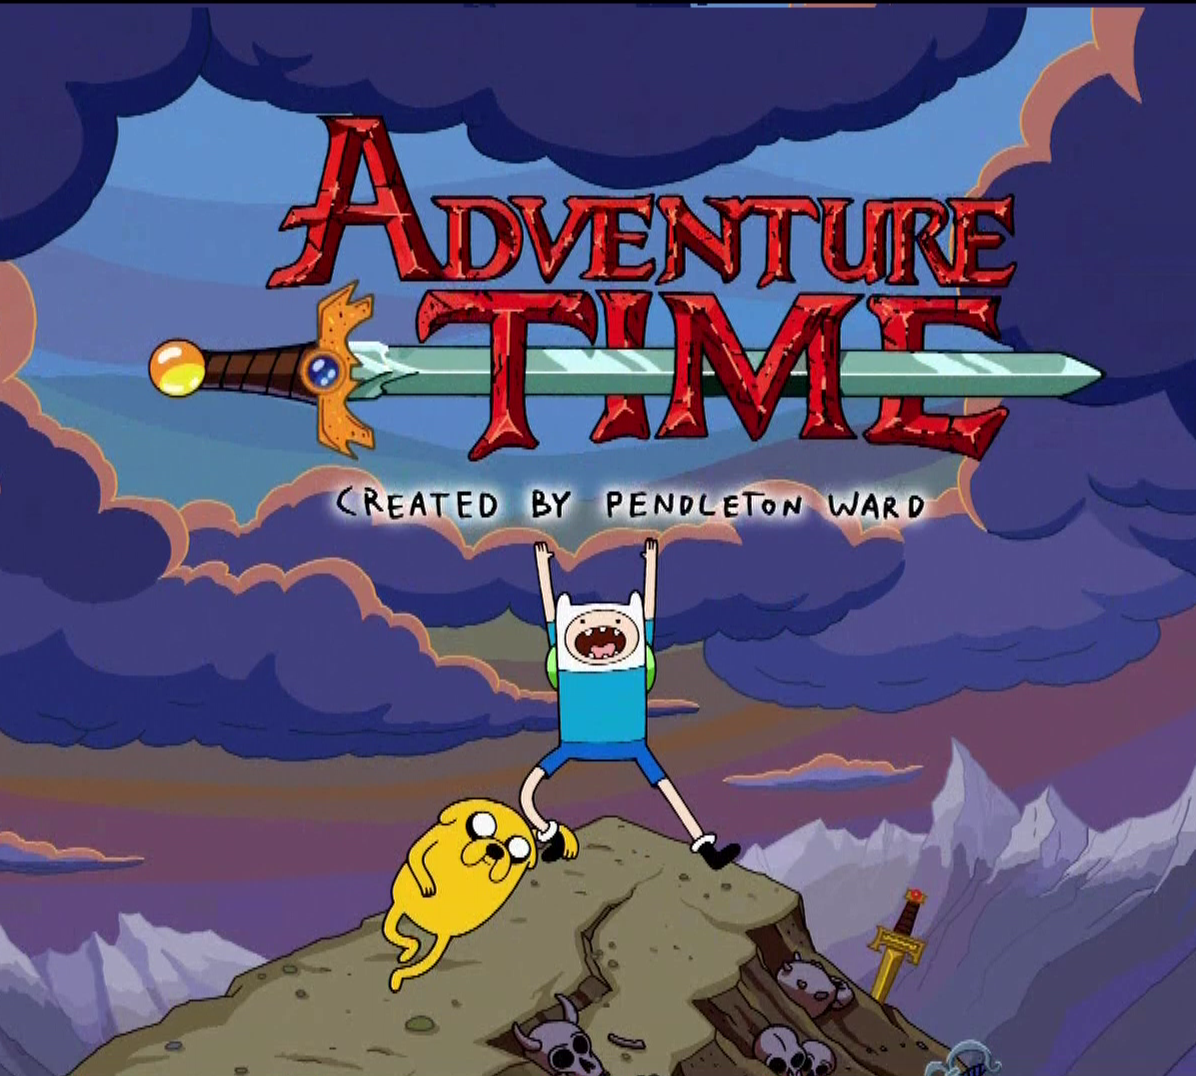 adventure_time_with_finn_jake1.jpg